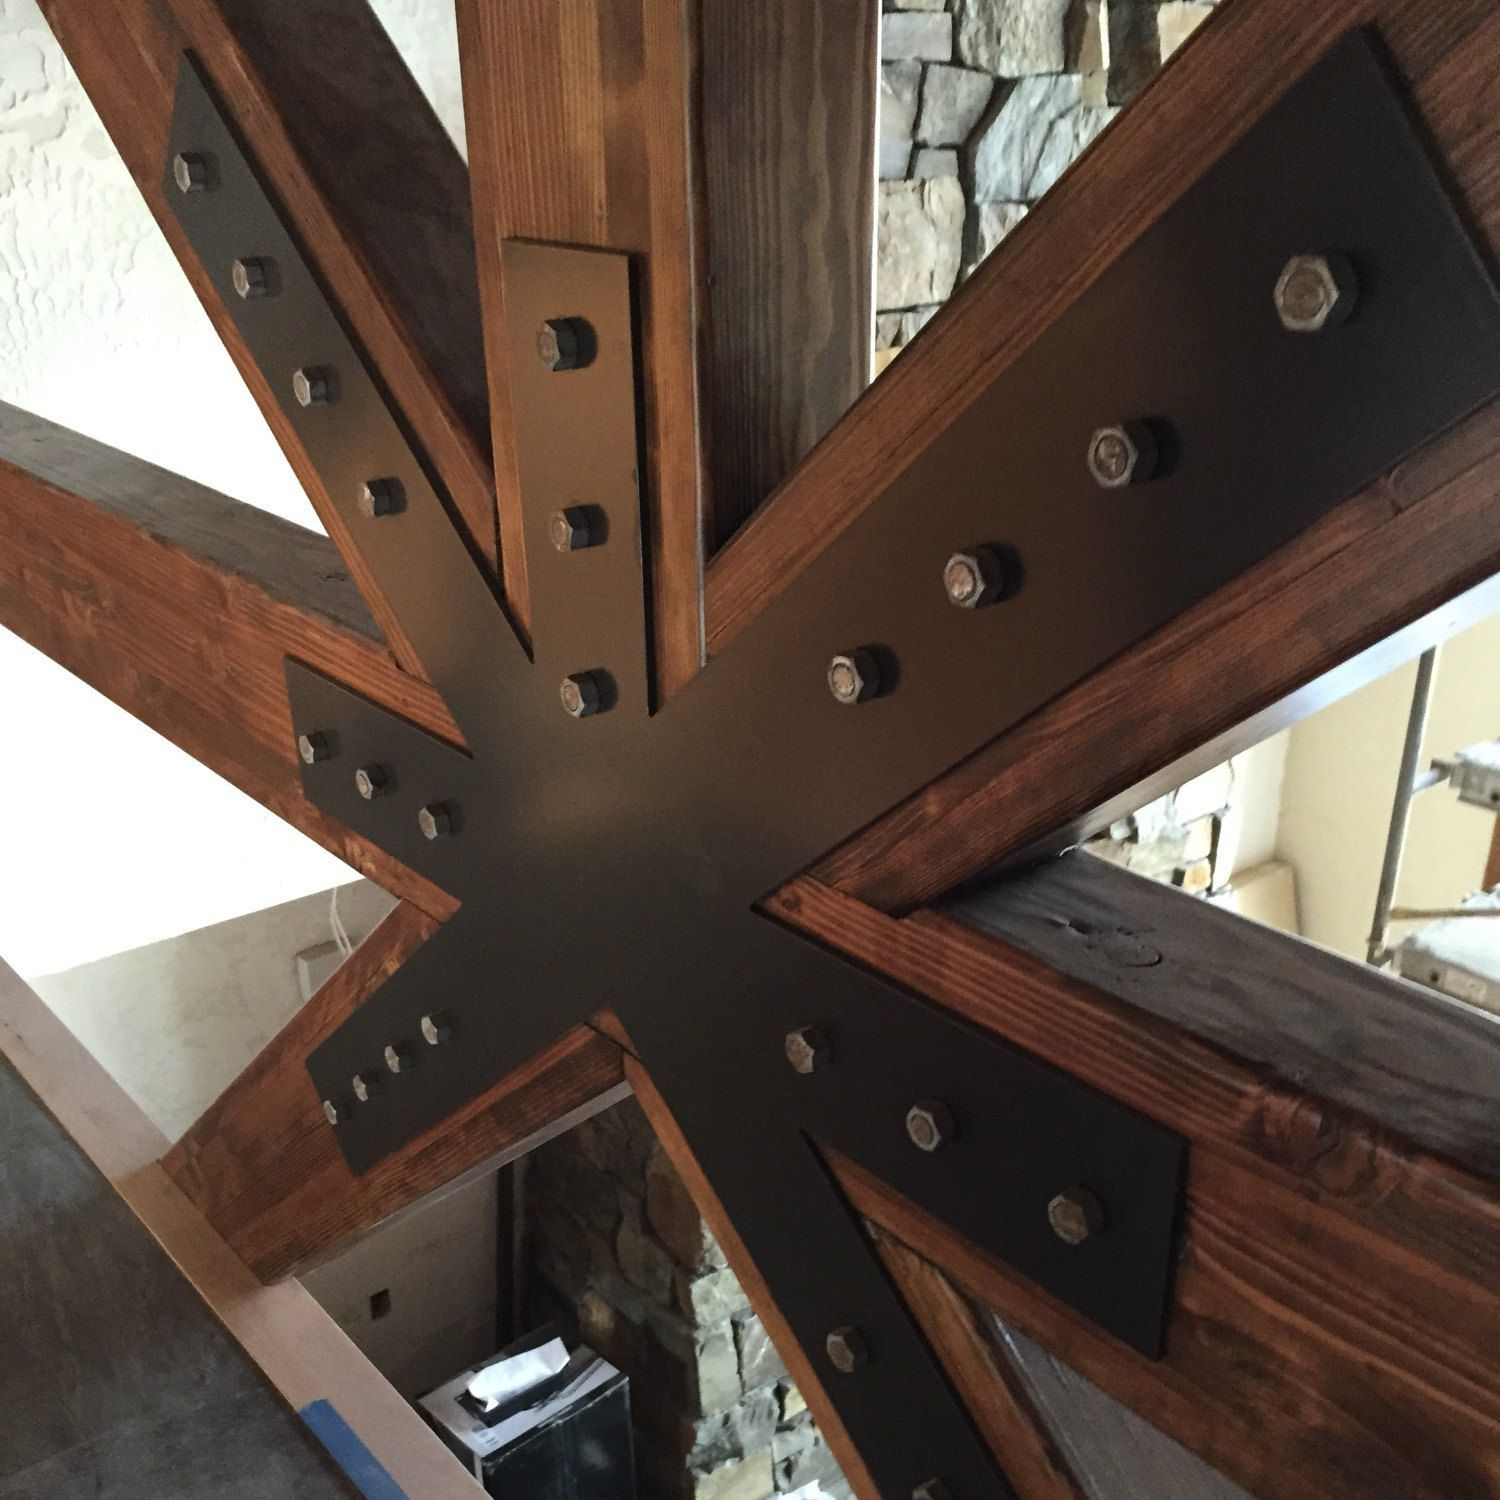 Pin On Beams